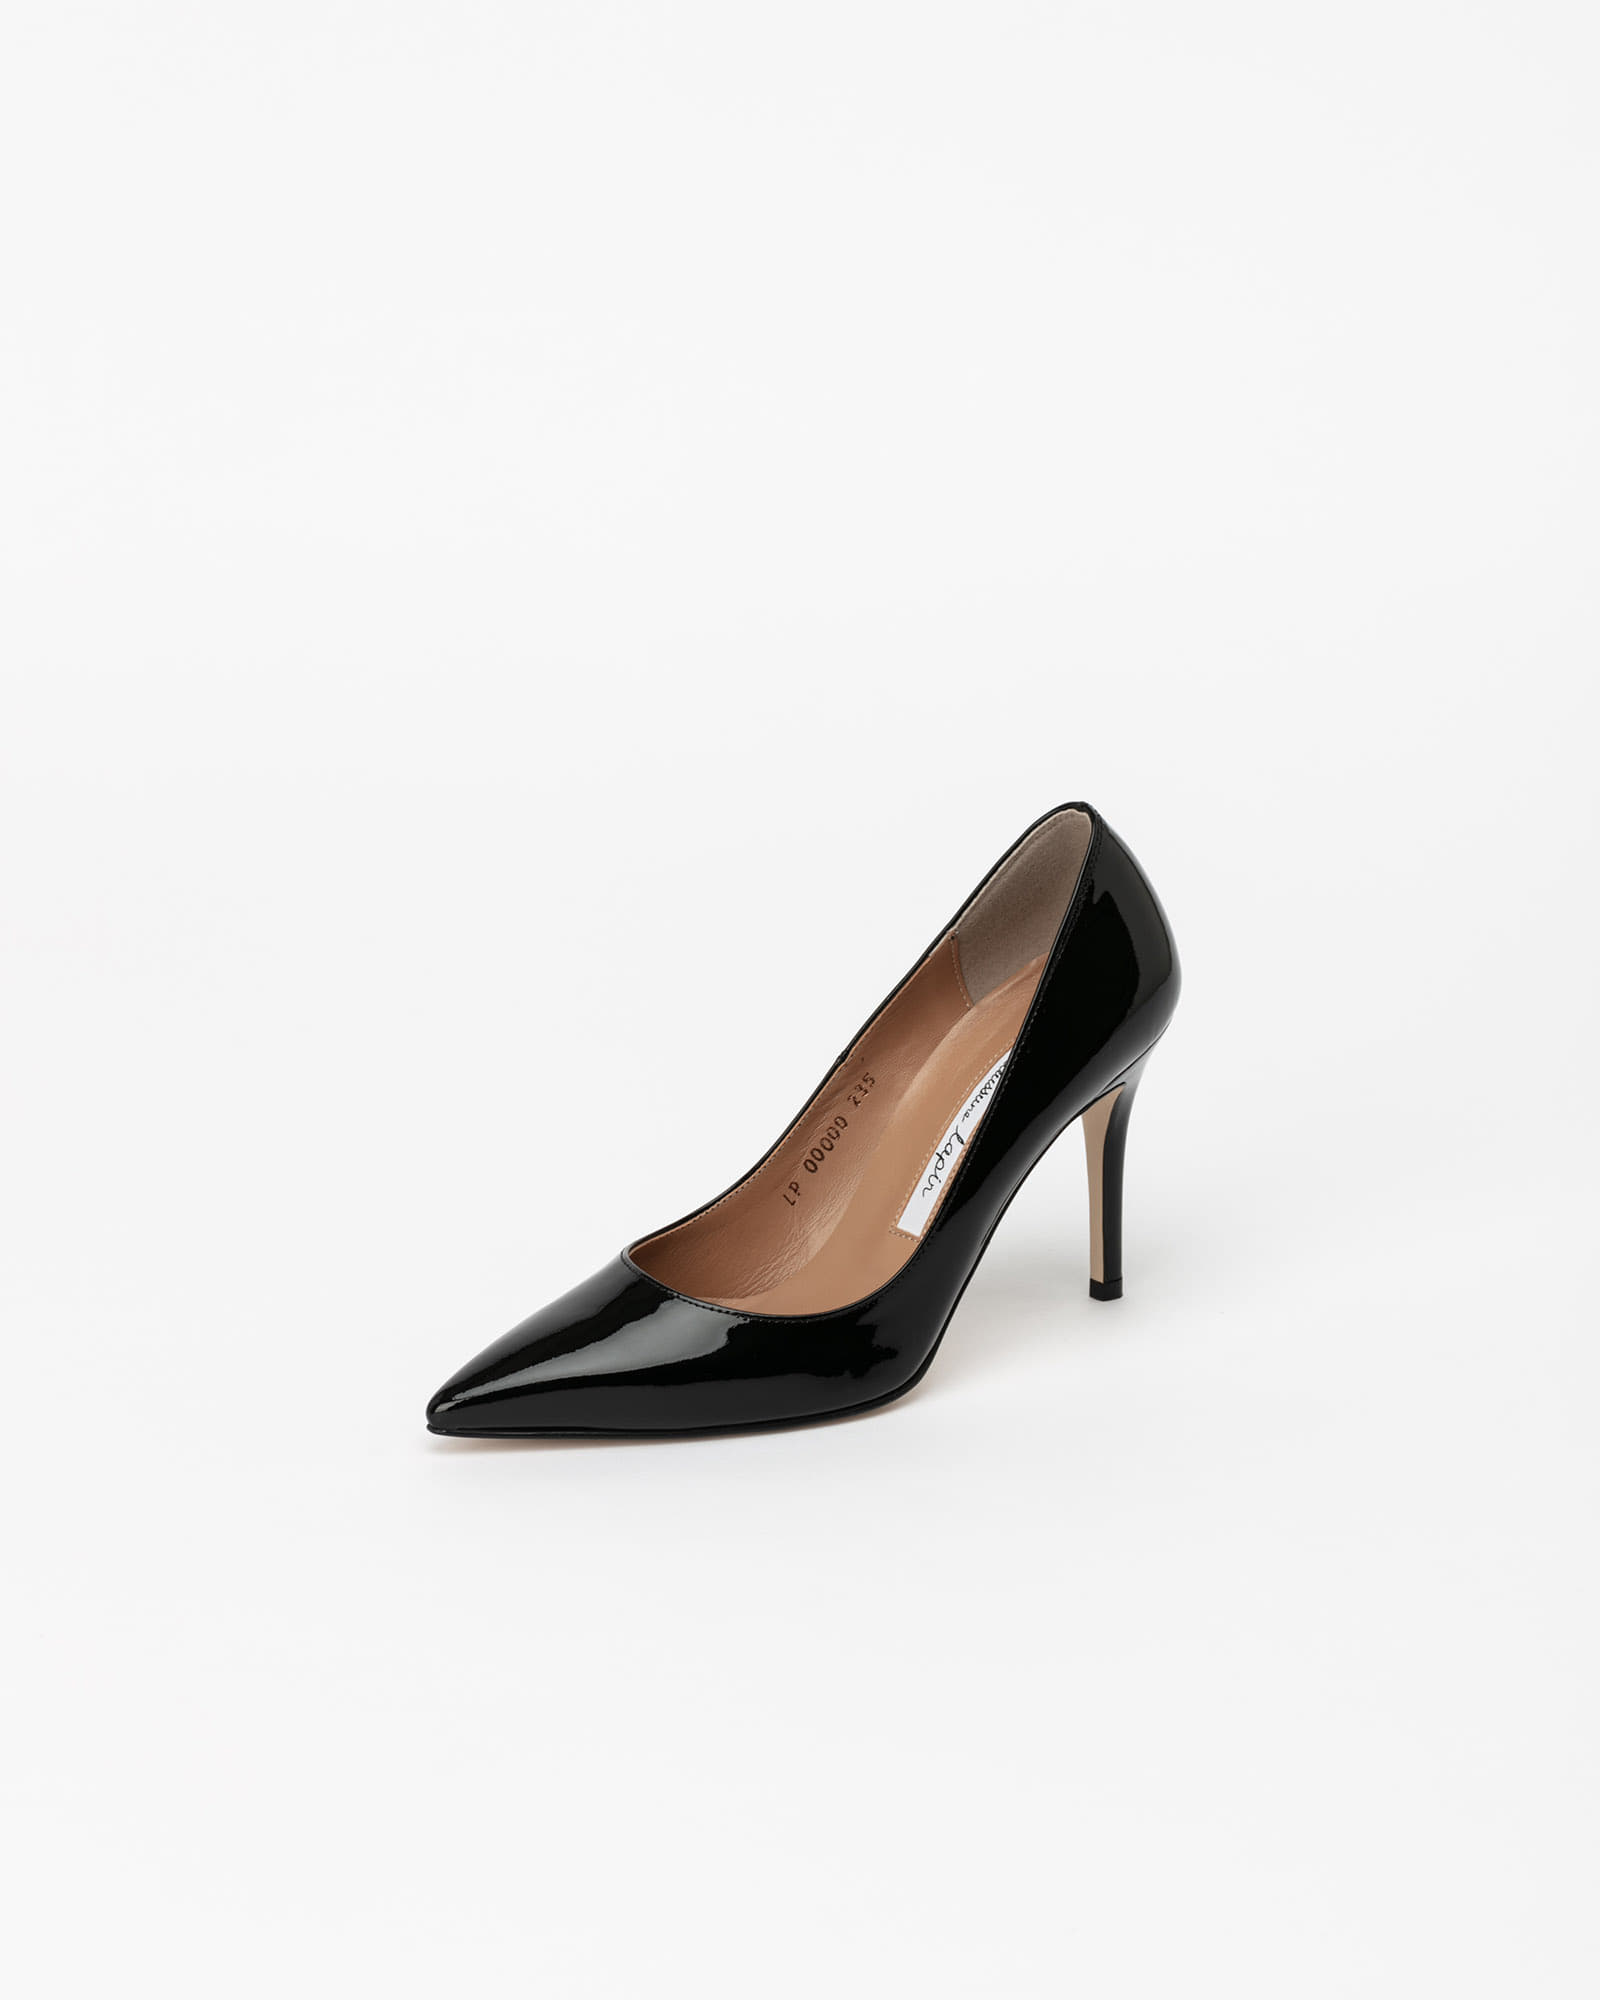 Parlor Stiletto Pumps in Black Patent